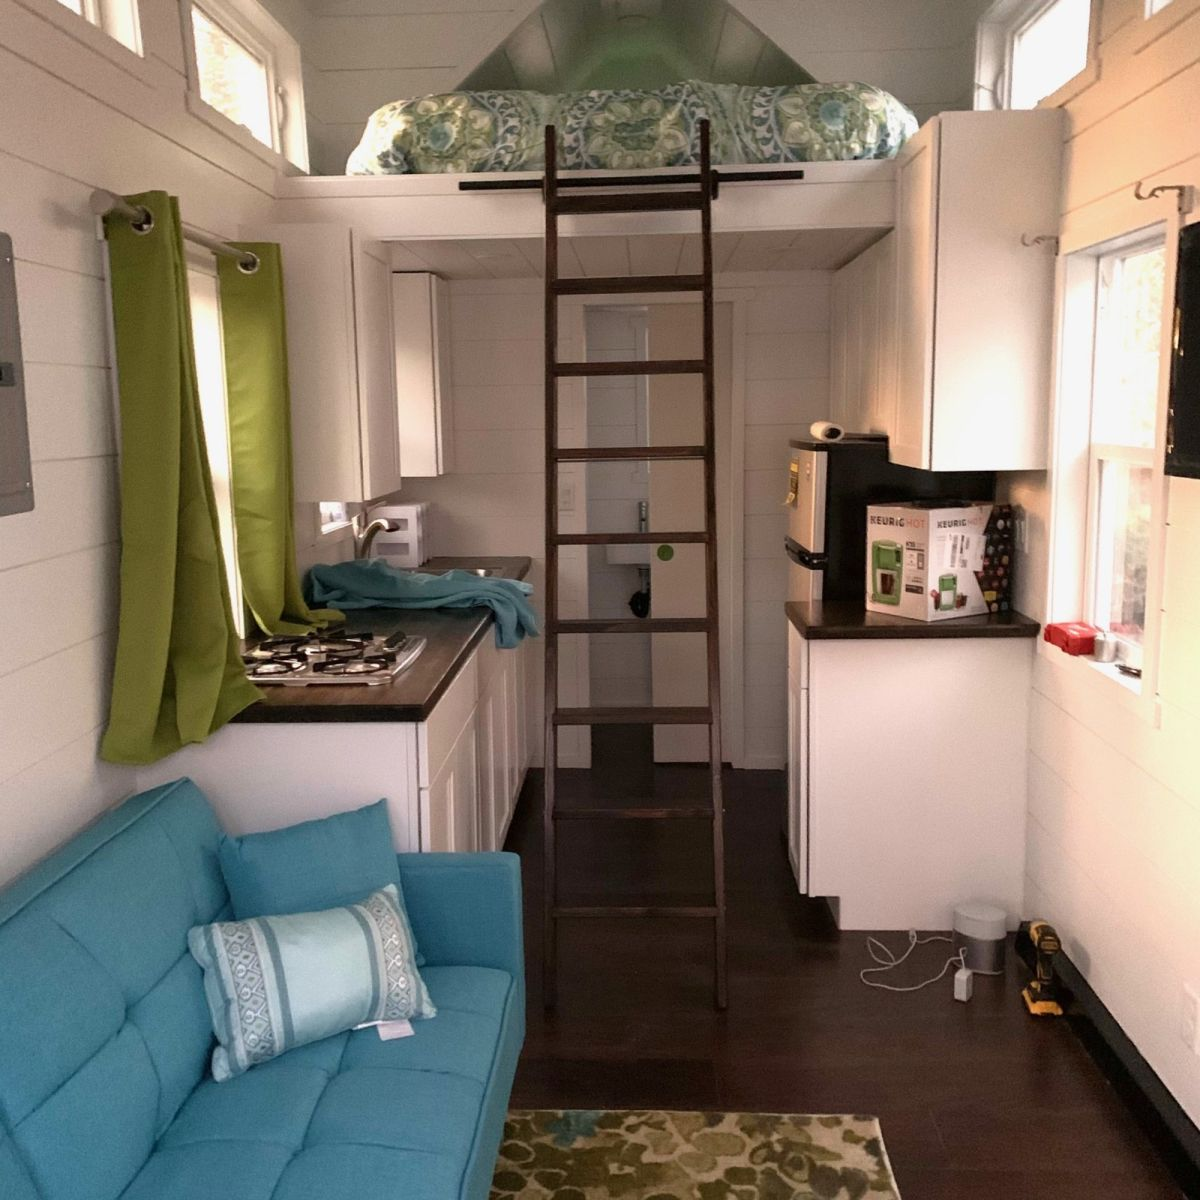 8x24 Tiny Home On Wheels New And Amazing Tiny House For Sale In Salt Lake City Utah Tiny House Listings